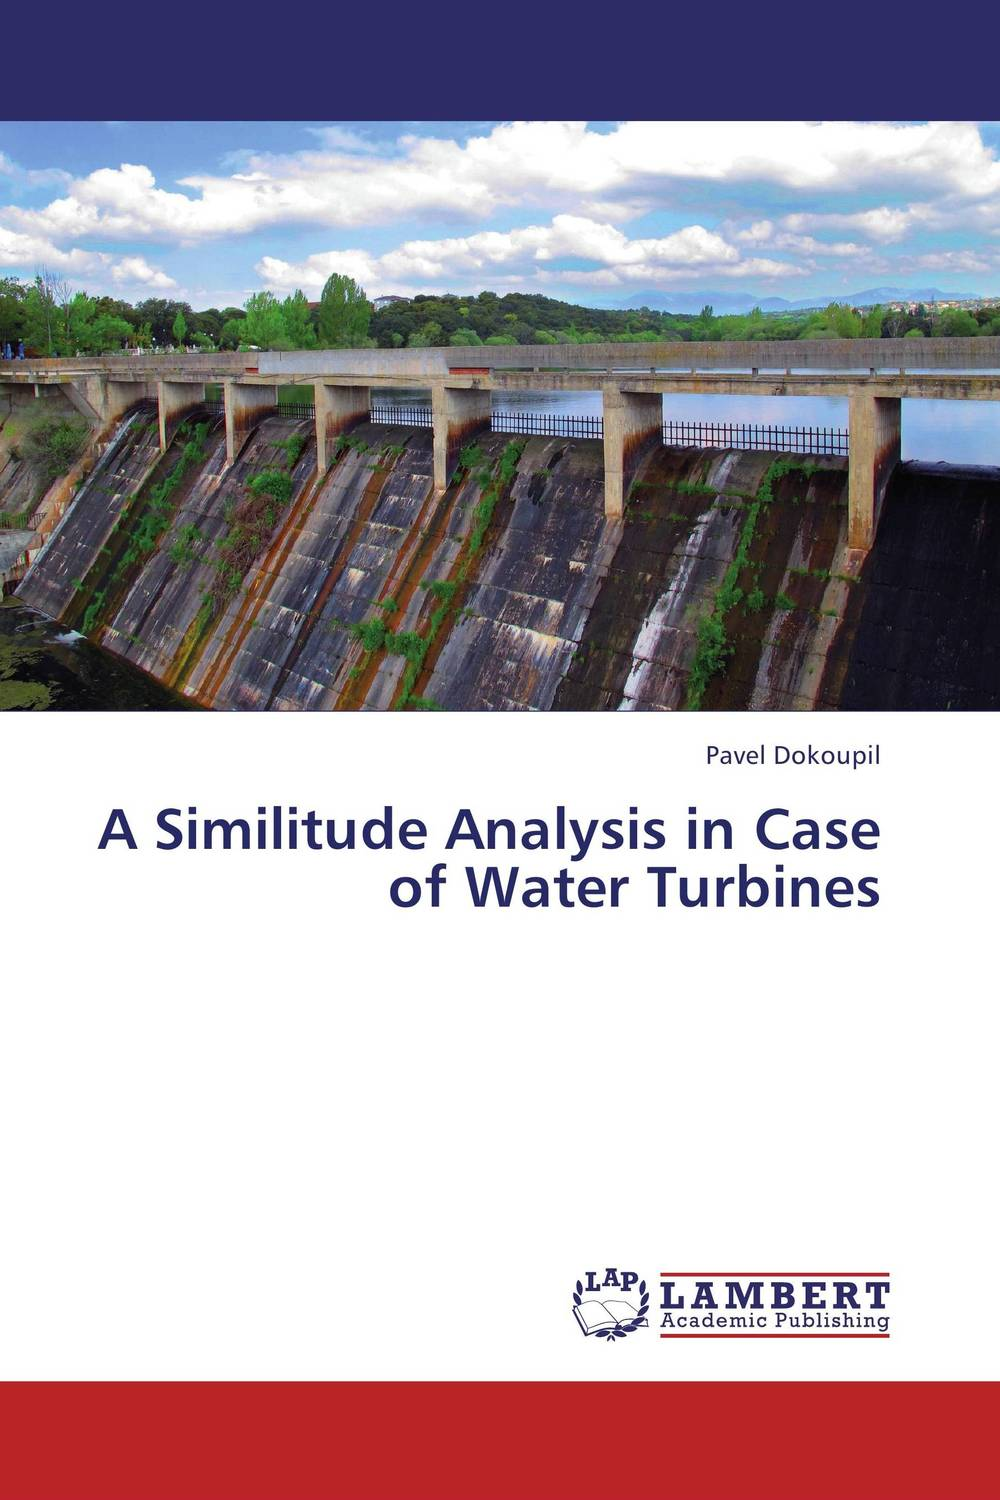 A Similitude Analysis in Case of Water Turbines thermo operated water valves can be used in food processing equipments biomass boilers and hydraulic systems